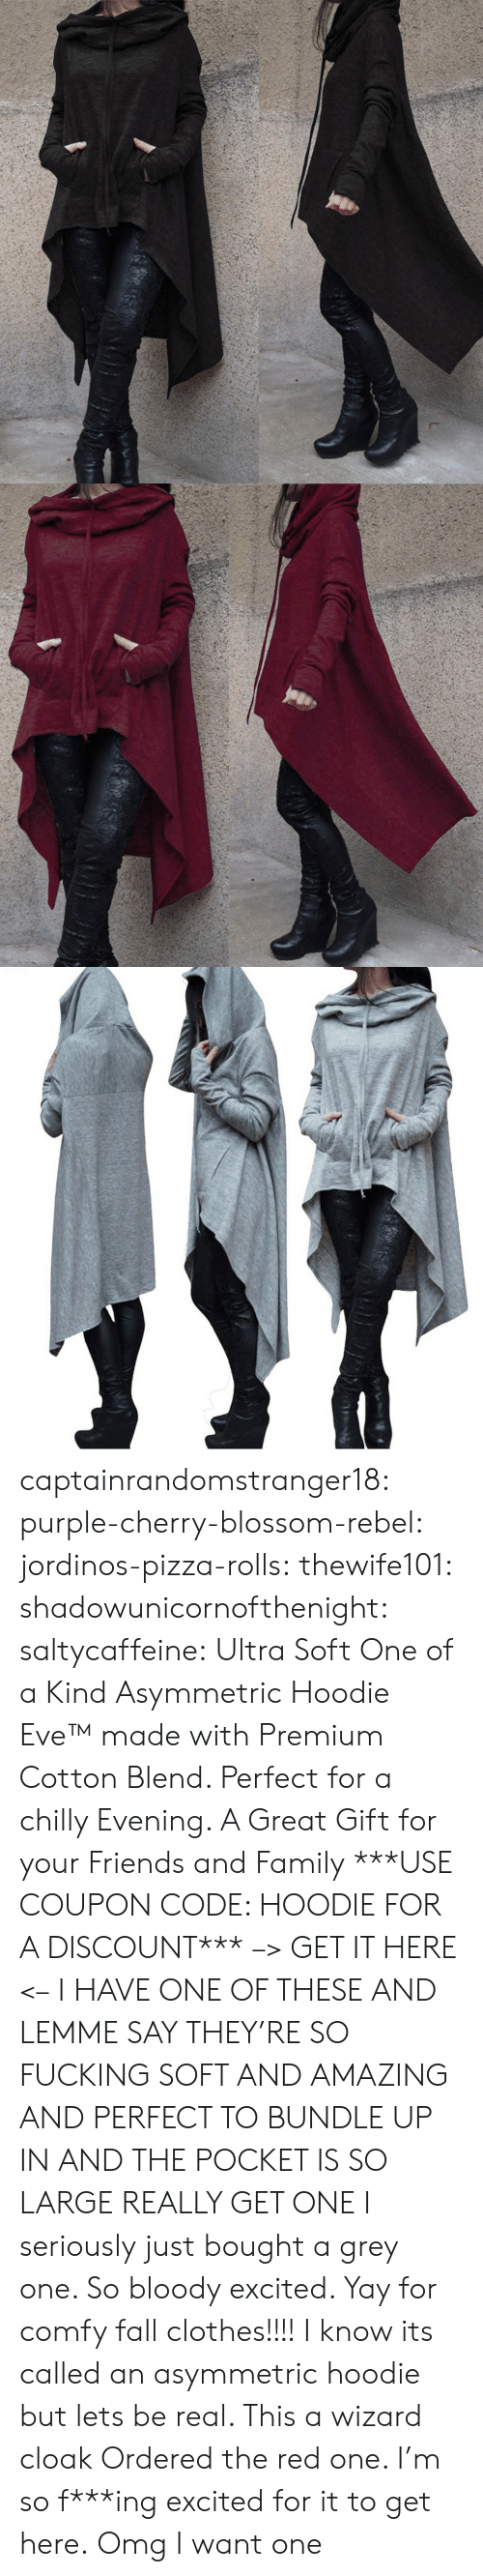 bundle up: captainrandomstranger18:  purple-cherry-blossom-rebel: jordinos-pizza-rolls:  thewife101:  shadowunicornofthenight:  saltycaffeine:  Ultra Soft One of a Kind Asymmetric Hoodie Eve™made with Premium Cotton Blend. Perfect for a chilly Evening. A Great Gift for your Friends and Family ***USE COUPON CODE: HOODIE FOR A DISCOUNT*** –> GET IT HERE <–   I HAVE ONE OF THESE AND LEMME SAY THEY'RE SO FUCKING SOFT AND AMAZING AND PERFECT TO BUNDLE UP IN AND THE POCKET IS SO LARGE REALLY GET ONE   I seriously just bought a grey one. So bloody excited. Yay for comfy fall clothes!!!!    I know its called an asymmetric hoodie but lets be real. This a wizard cloak   Ordered the red one. I'm so f***ing excited for it to get here.  Omg I want one